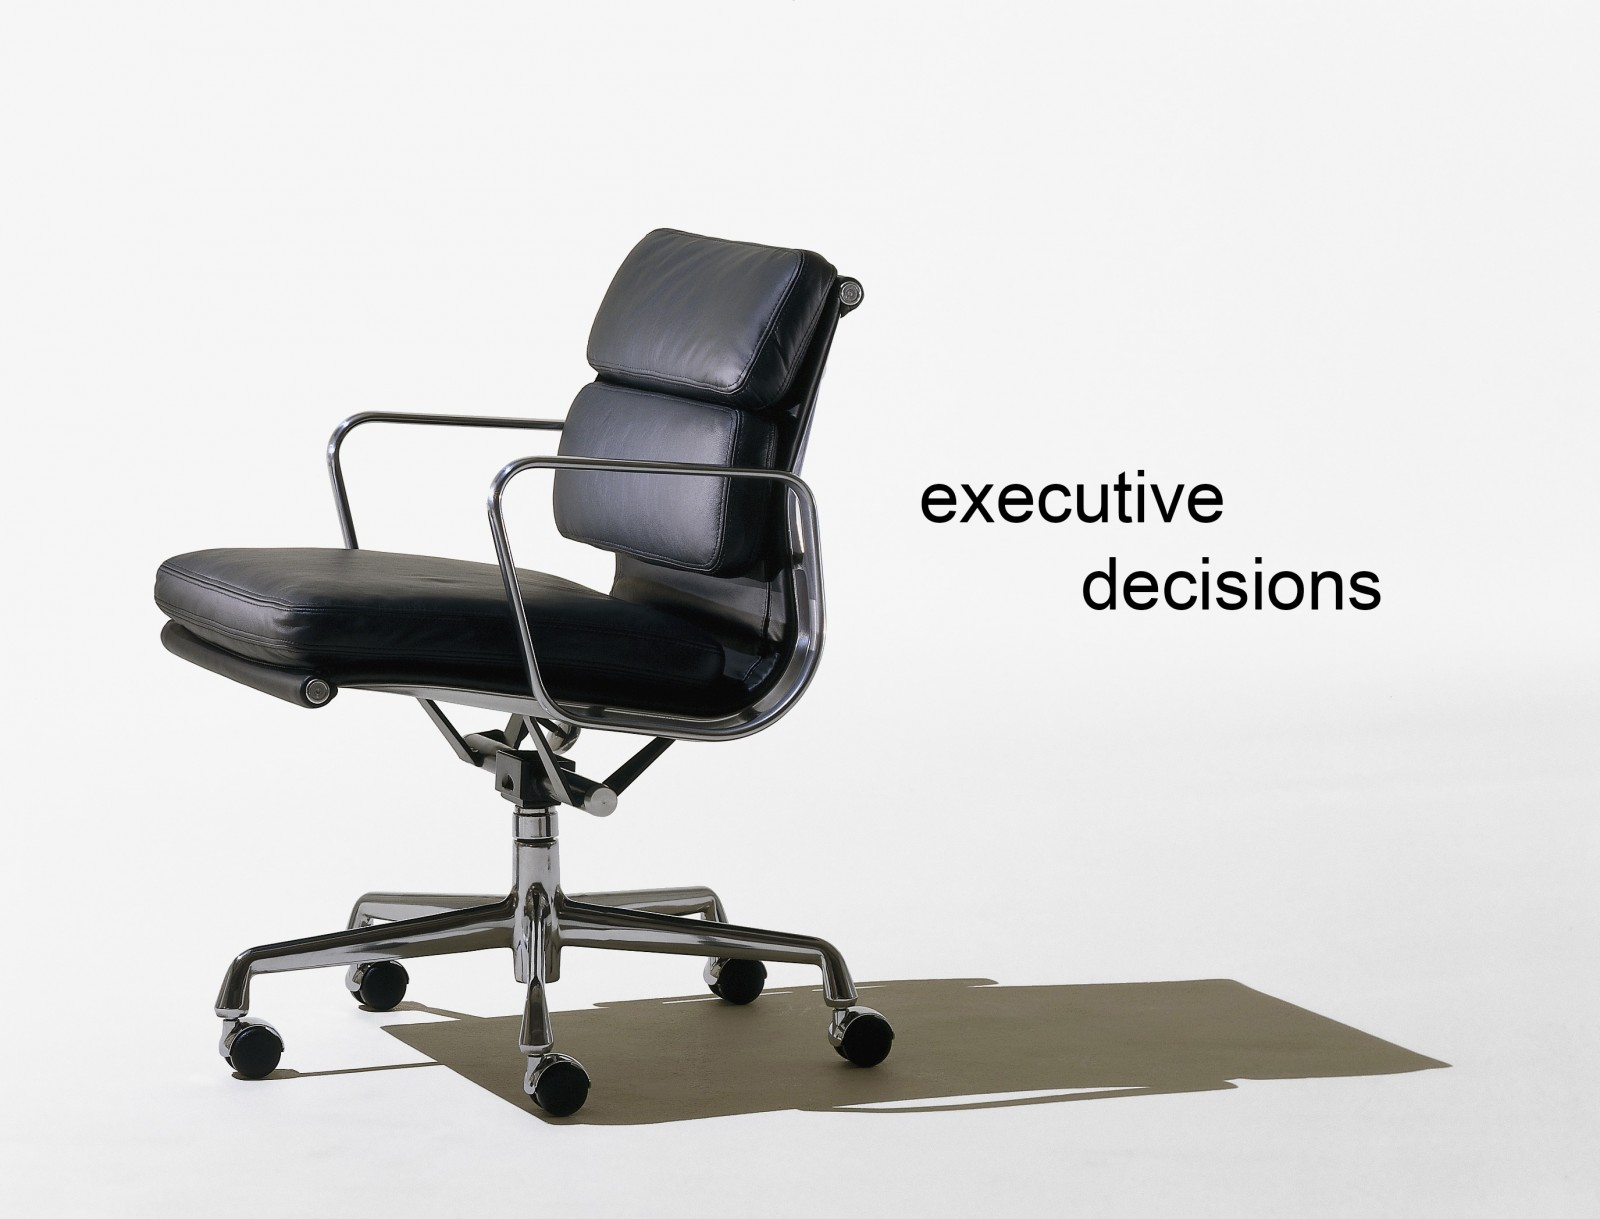 executive office furniture, office desks wicklow, office furniture dublin,